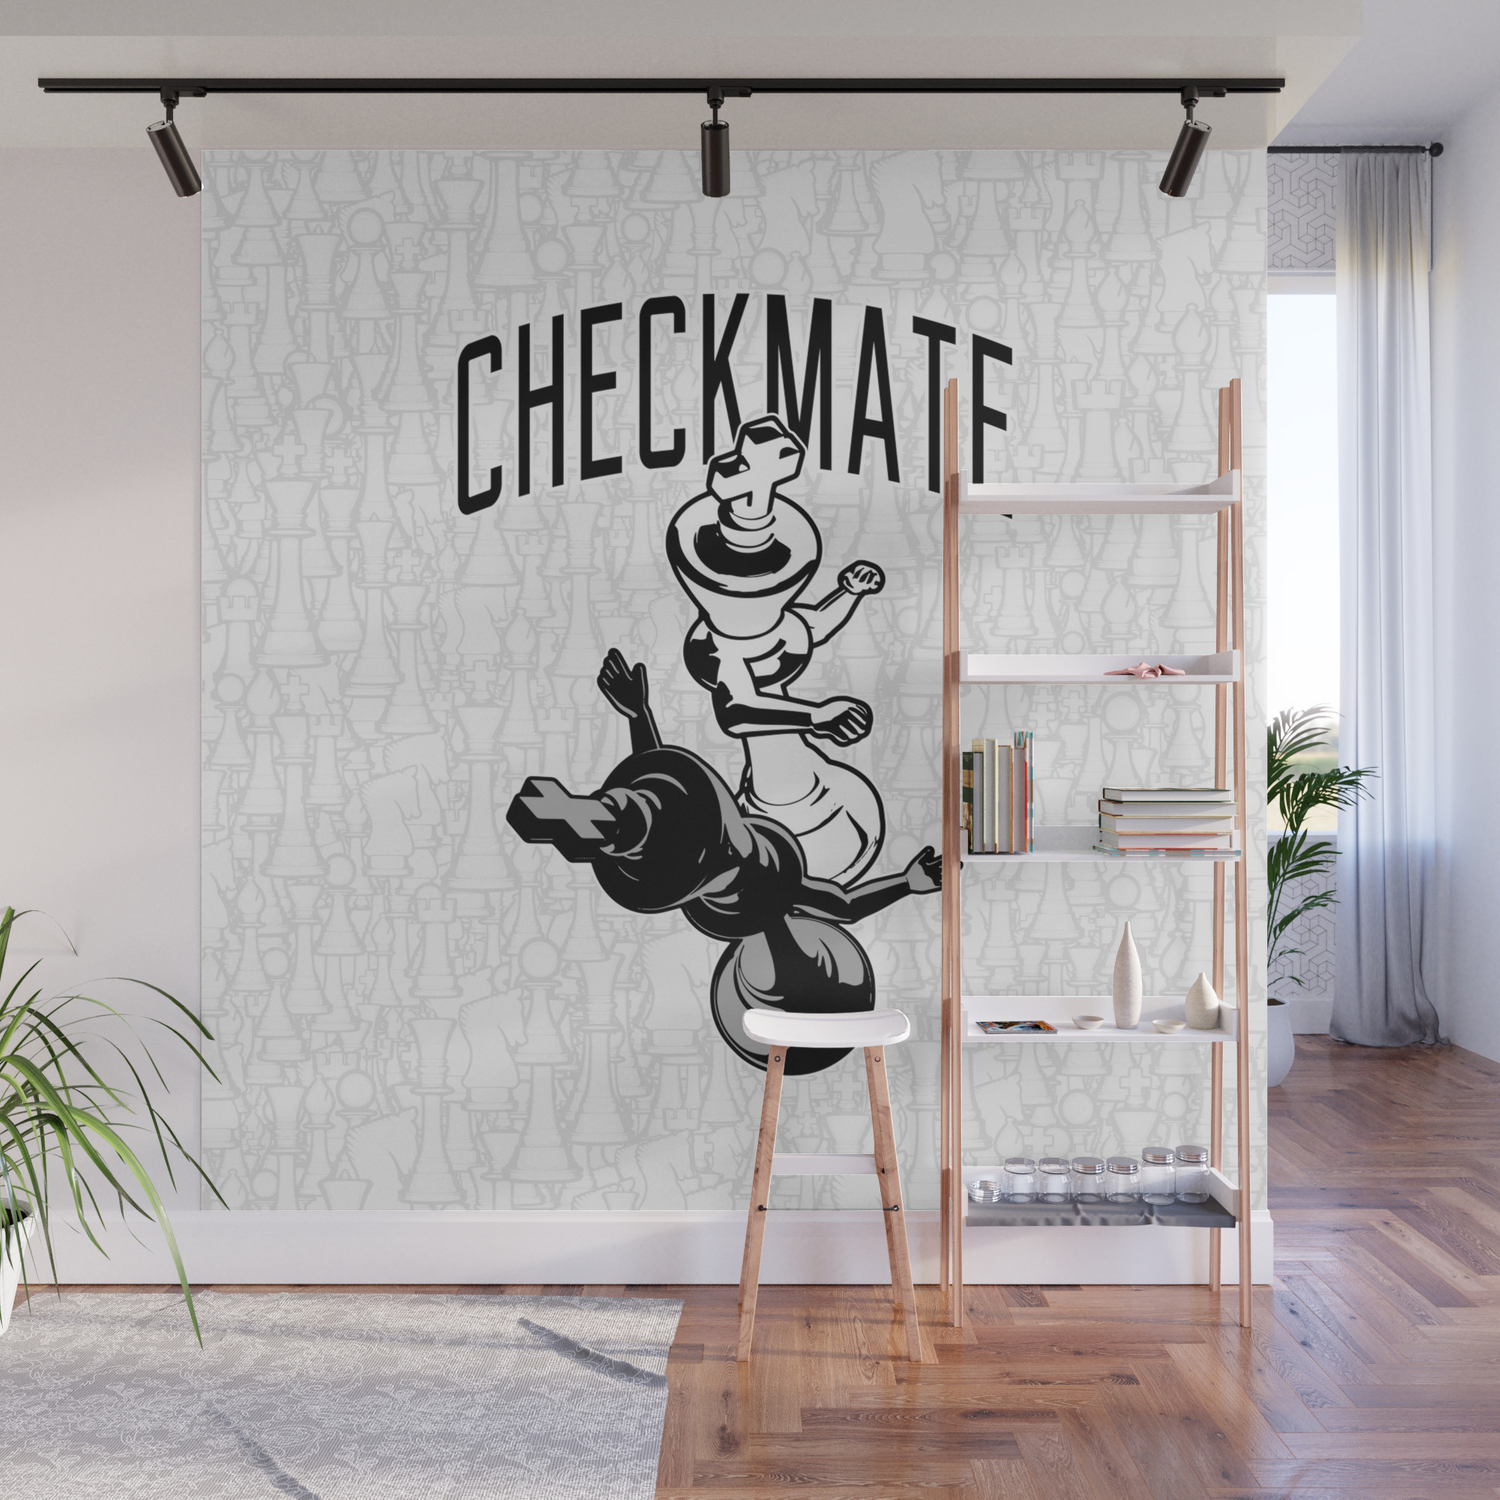 c6d10a36c Checkmate Punch Funny Boxing Chess Wall Mural by grandeduc | Society6